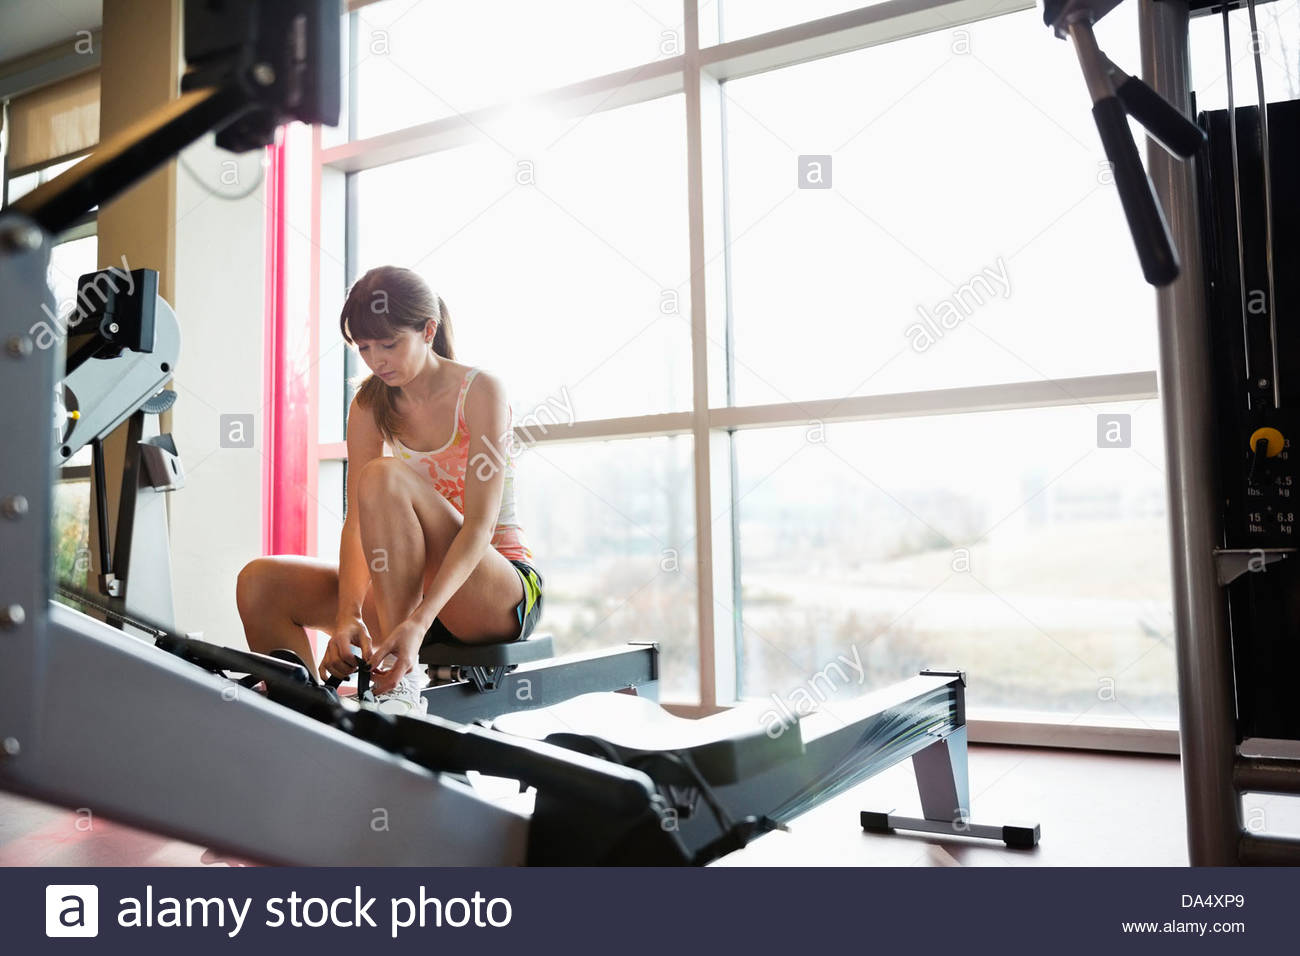 Woman preparing to exercise in fitness center - Stock Image